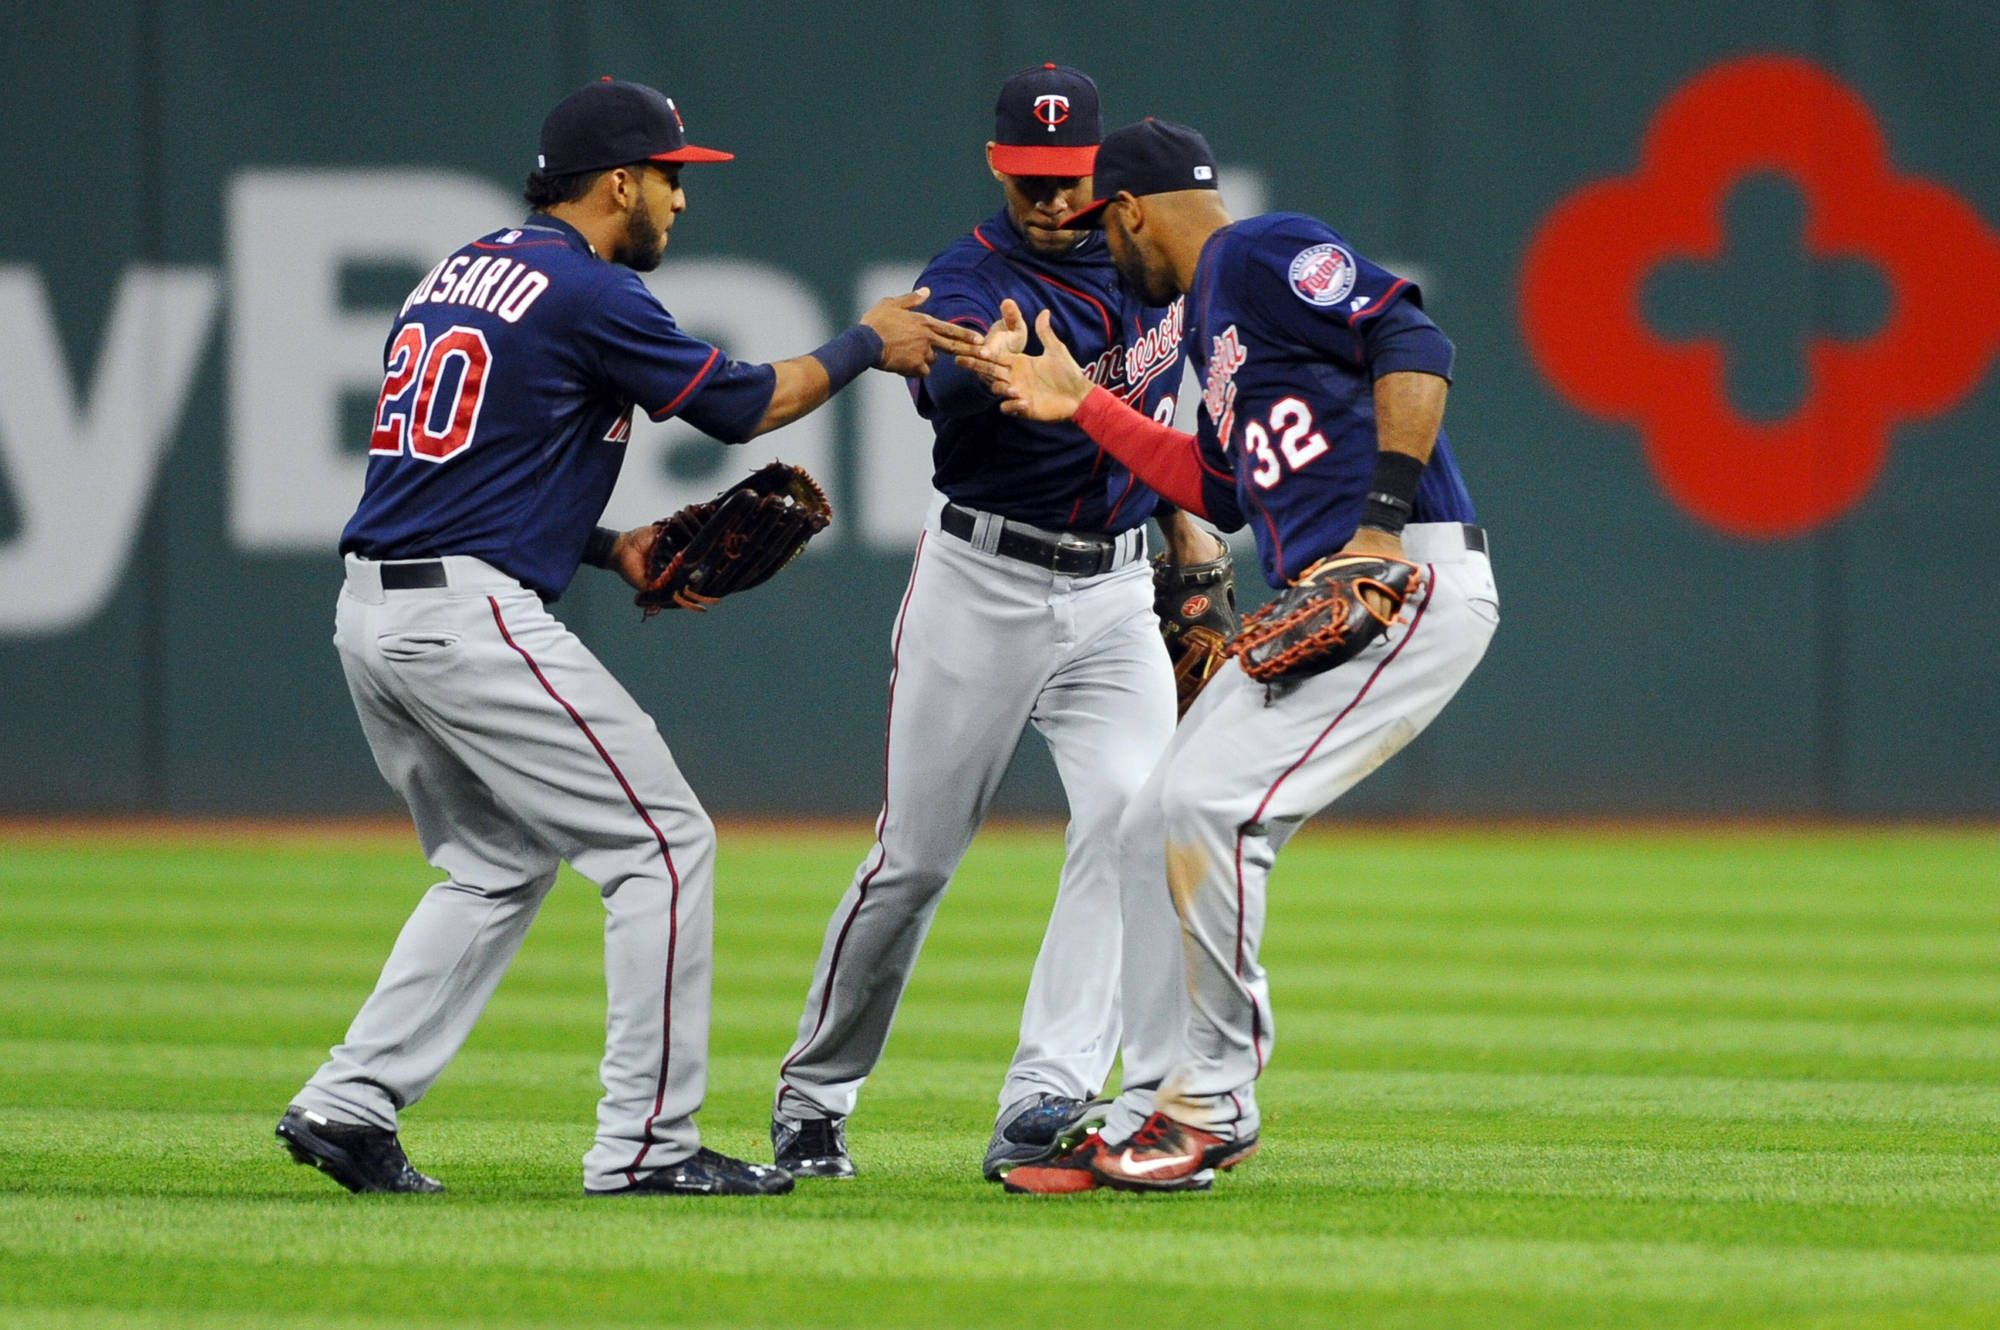 2000x1330 Minnesota Twins Wallpapers Images Photos Pictures Backgrounds